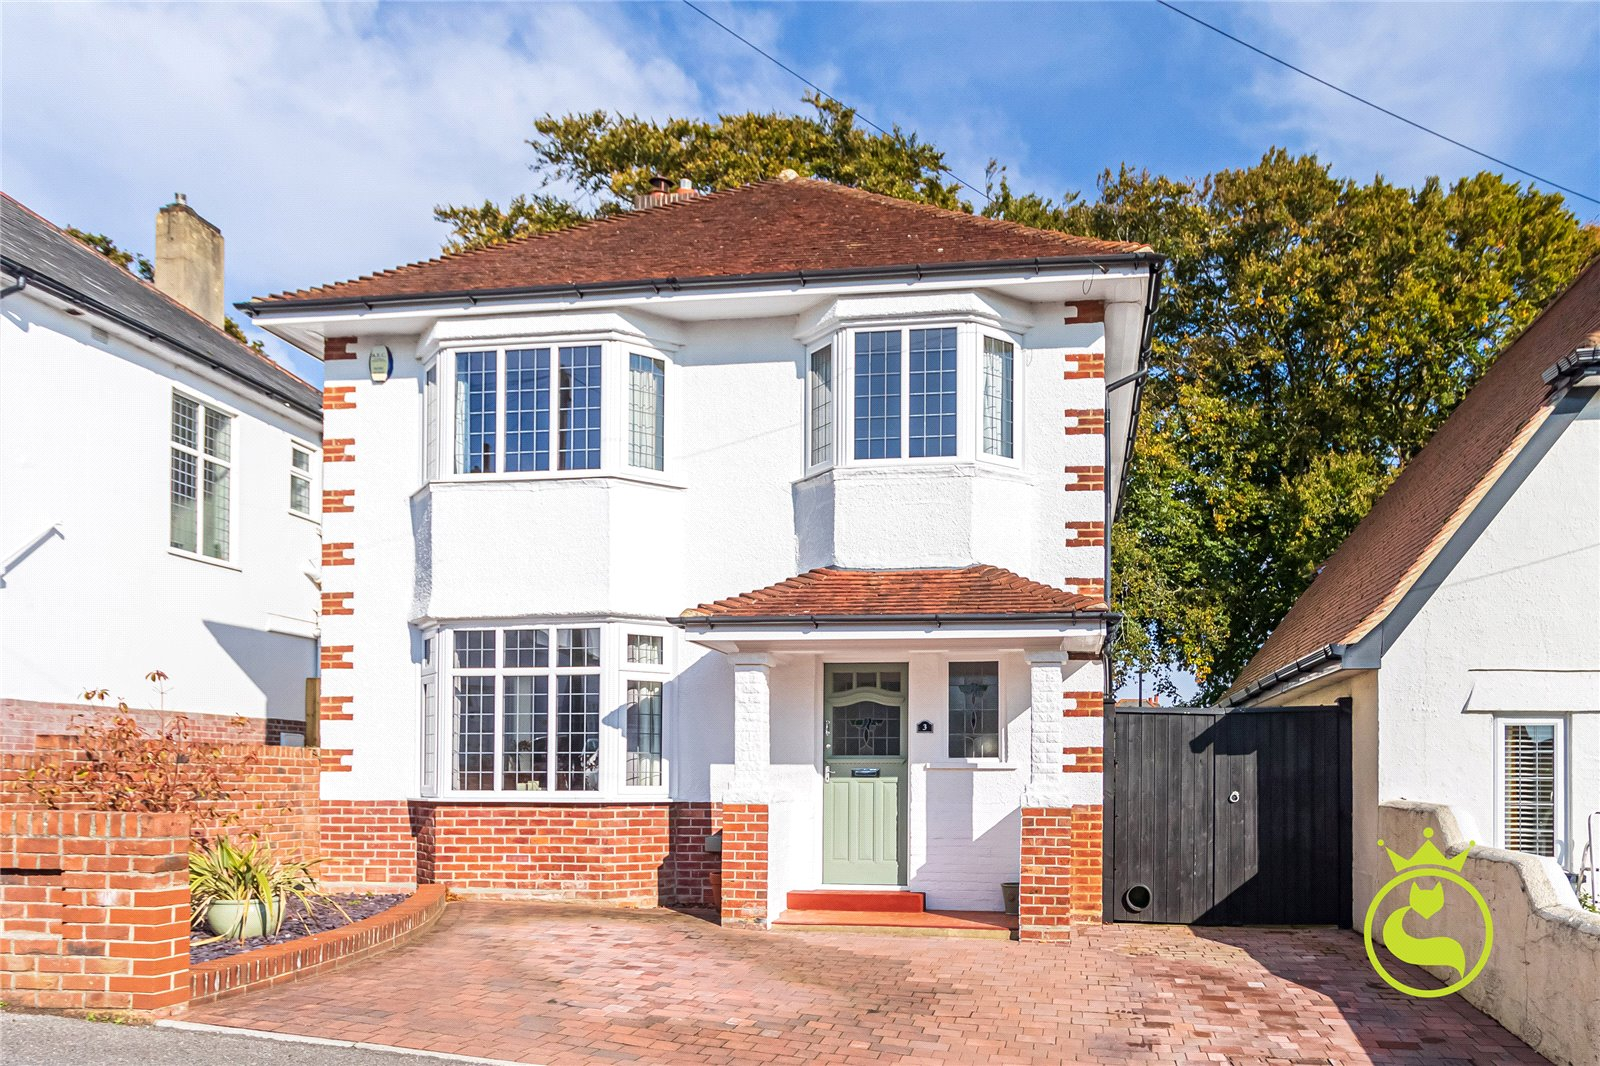 3 bed house for sale in Mansfield Avenue, Lower Parkstone  - Property Image 1